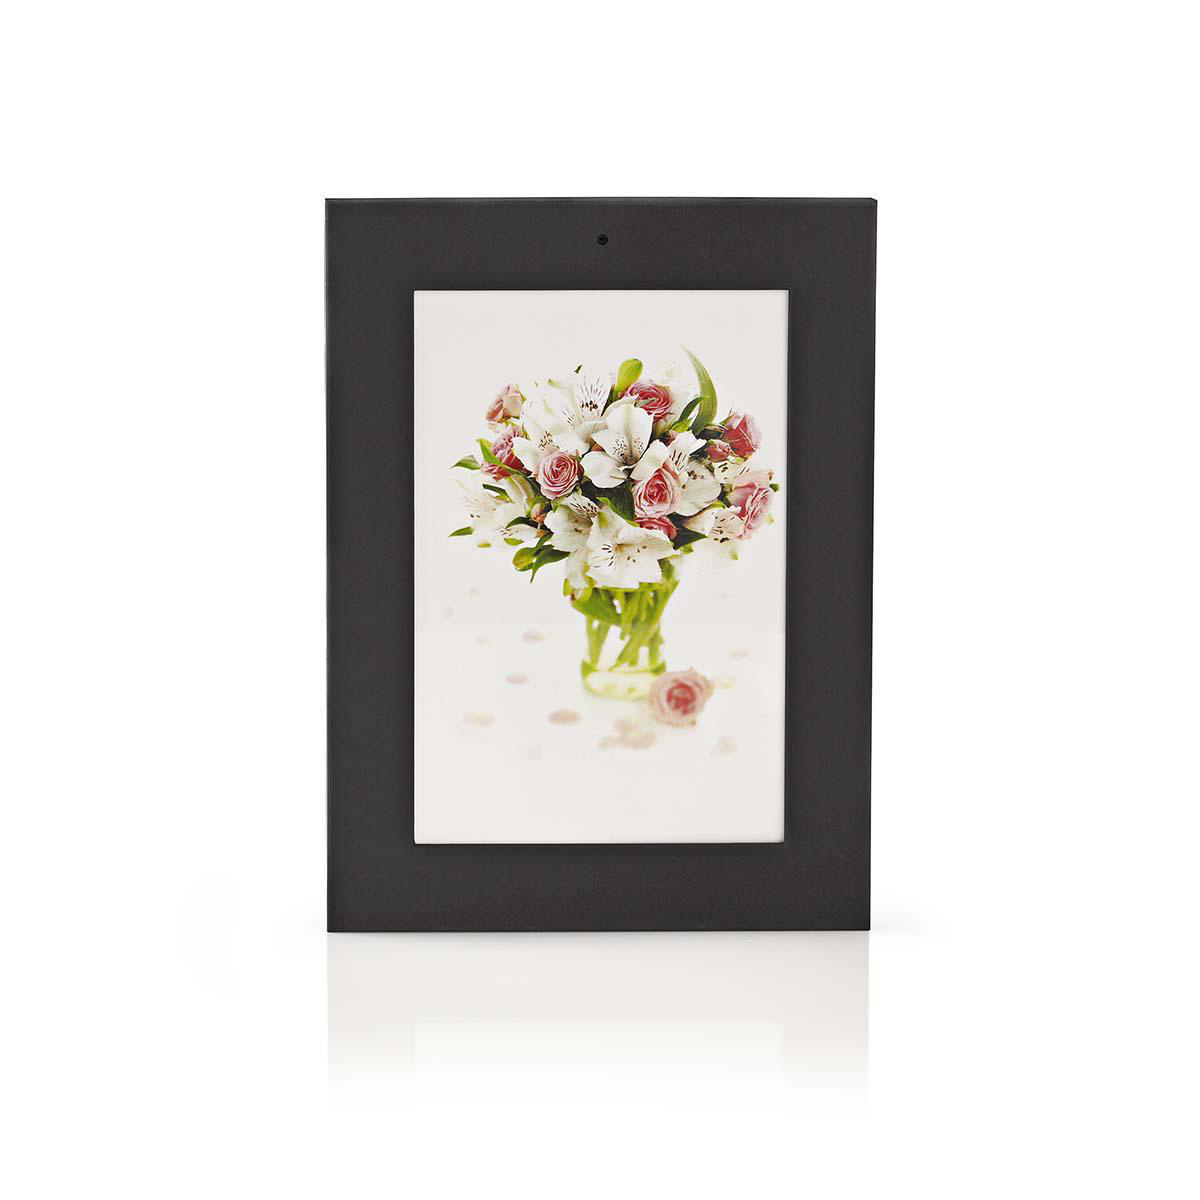 Photo frame with integrated camera | 1280x960 video | 3840x2880 photo | Rechargeable Place this photo frame with hidden camera at a strategic point in your home and keep an eye on your belongings unobtrusively. The images are recorded on a microSD card, s